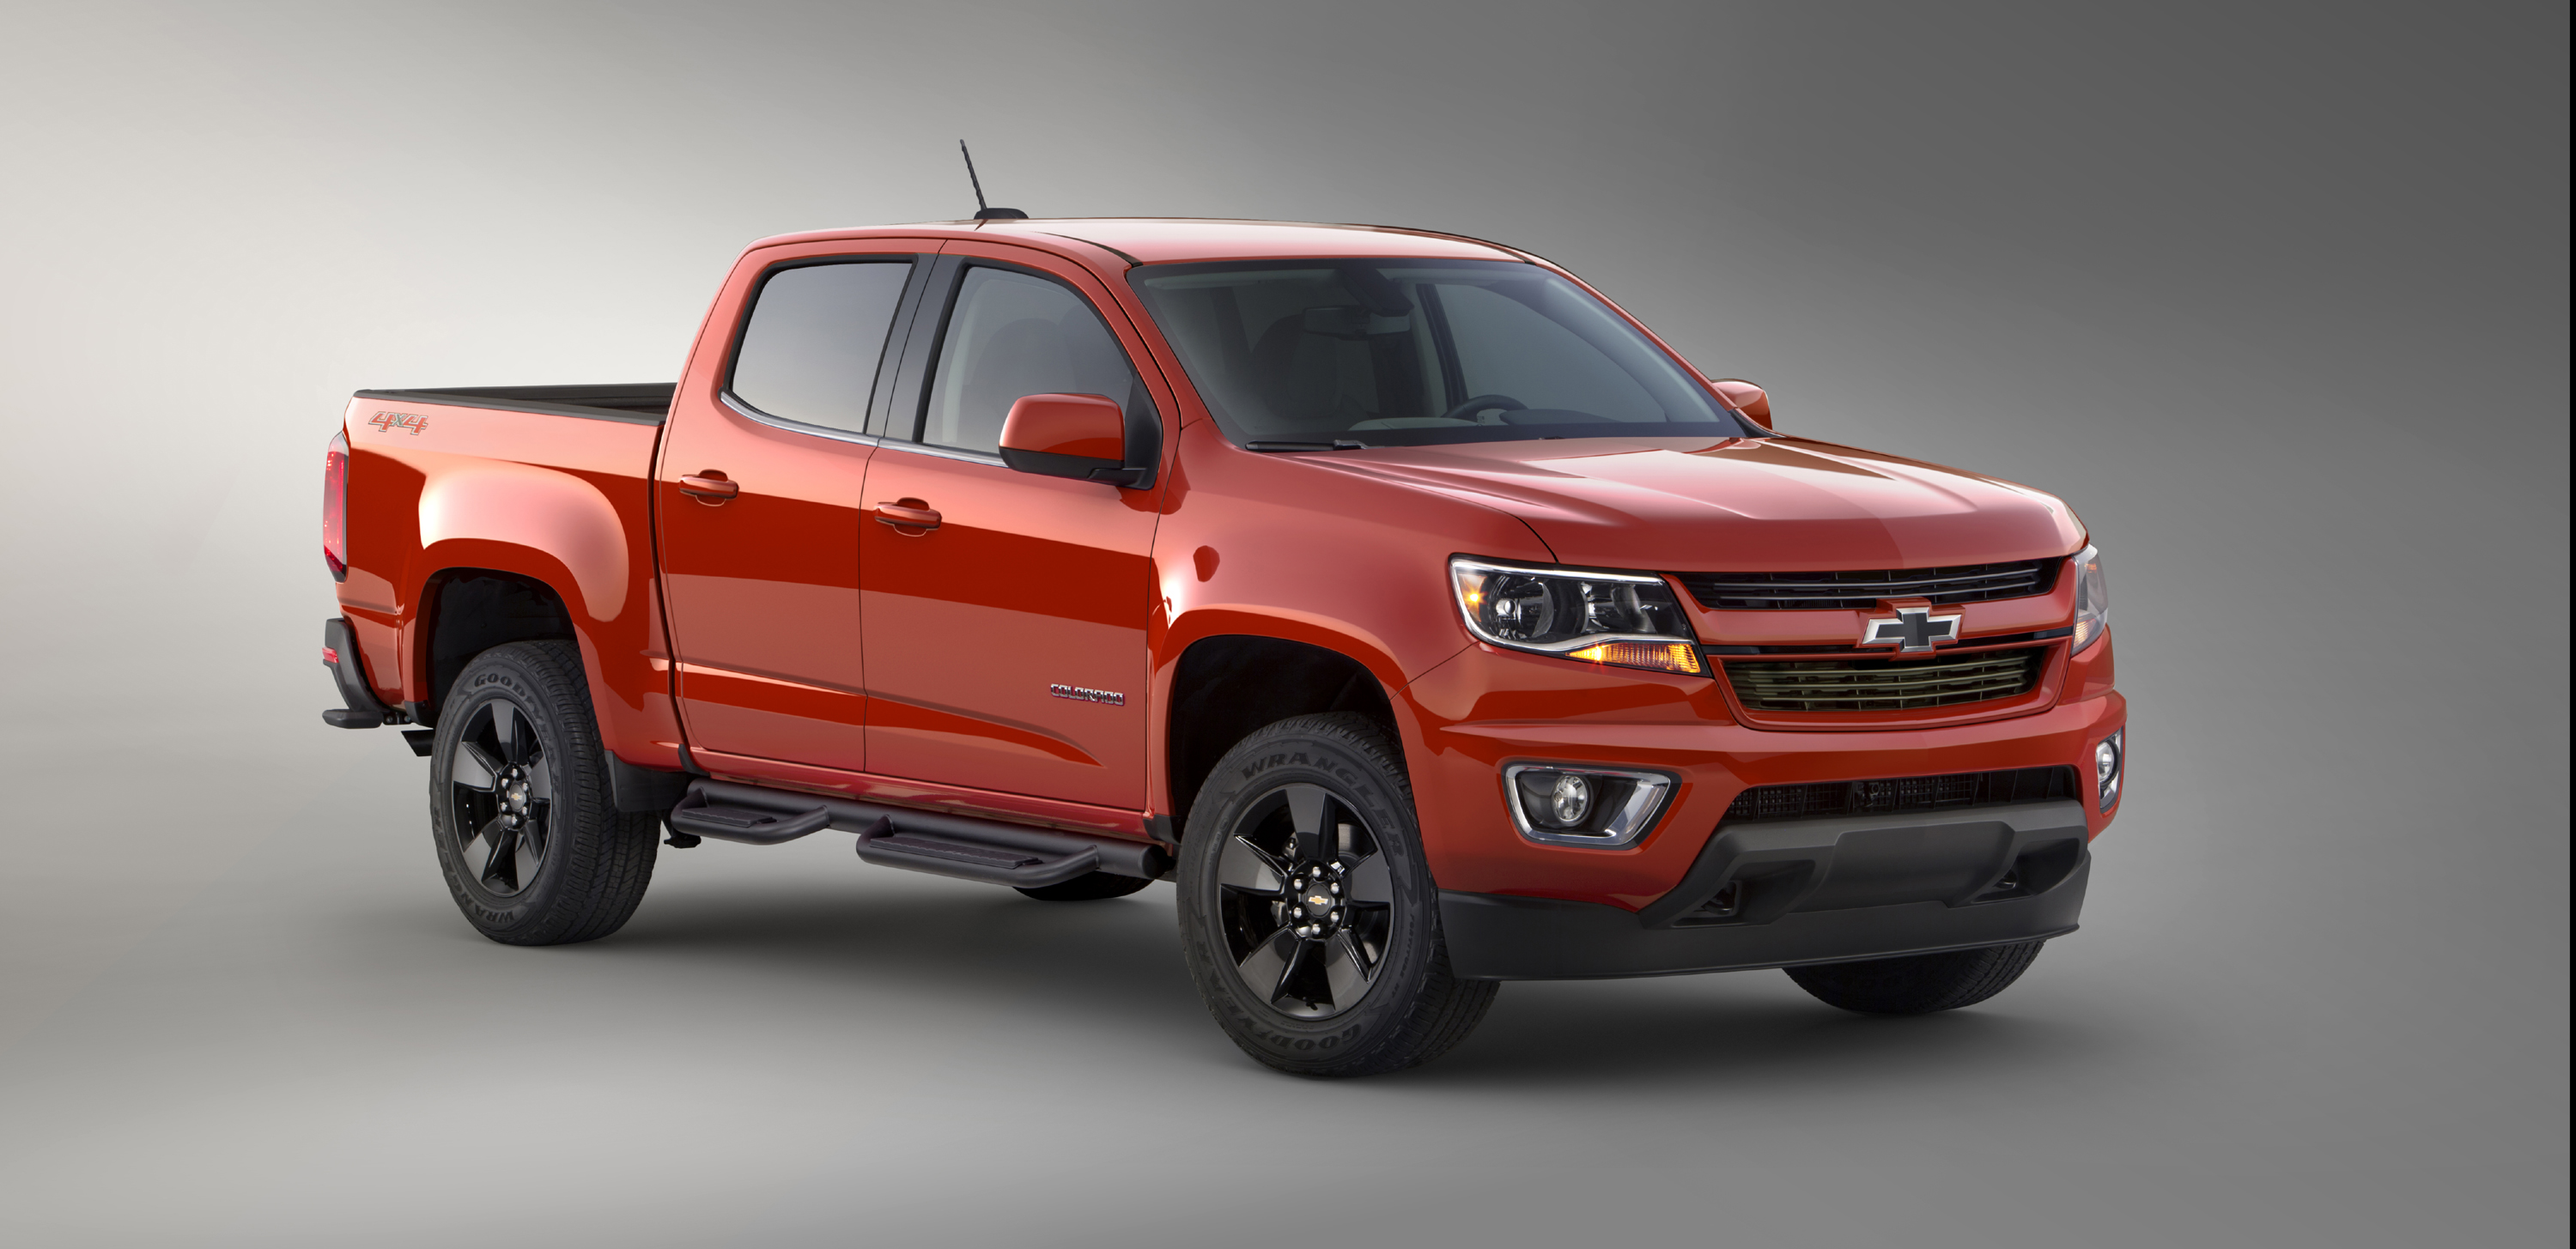 2015 Chevrolet Colorado Gear Edition Confirmed to Debut at Chicago